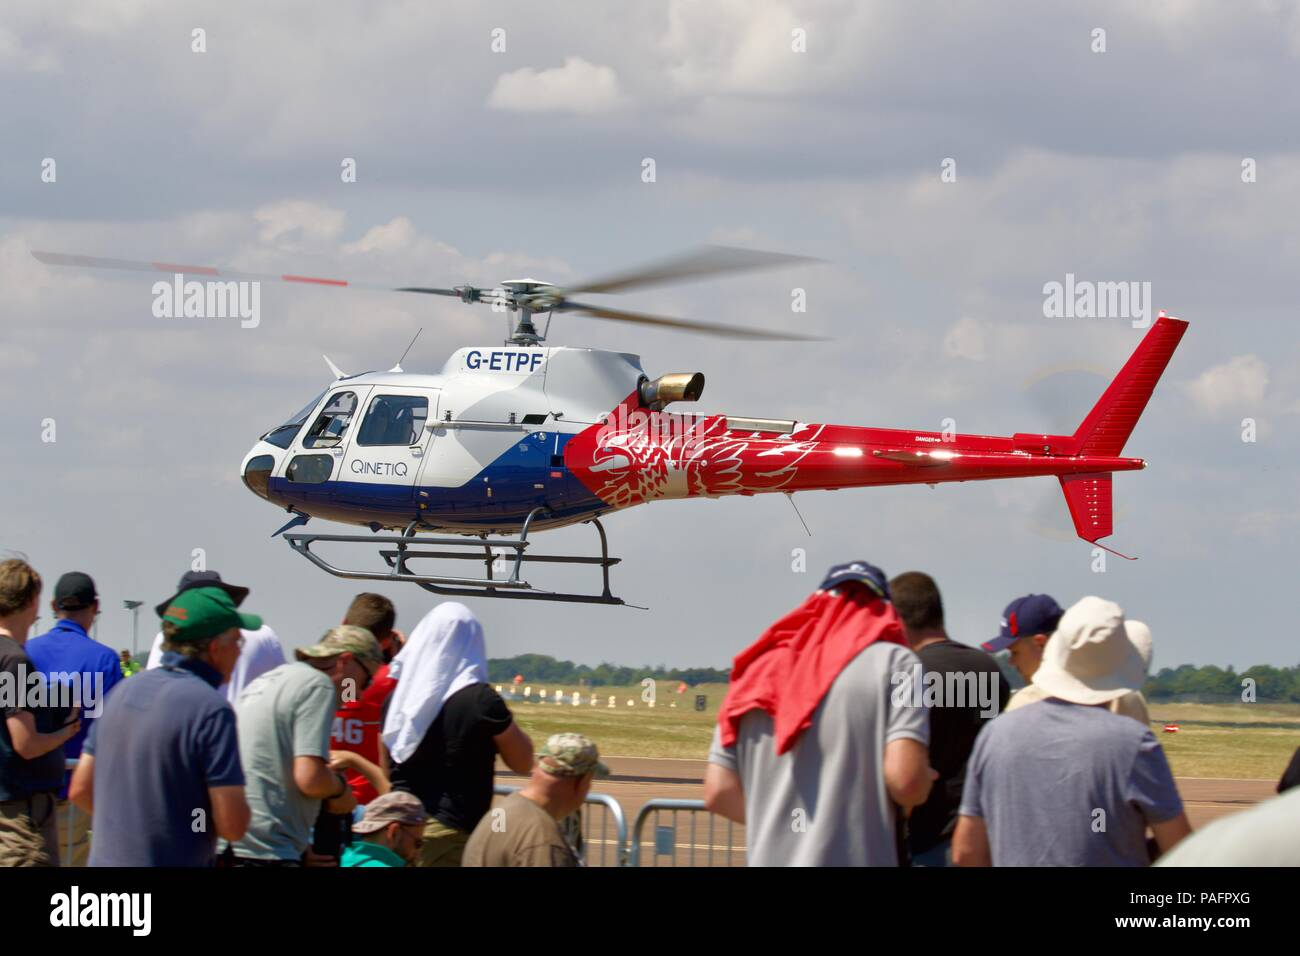 QinetiQ - Airbus H125 helicopter decorated in the new ETPS livery - Stock Image